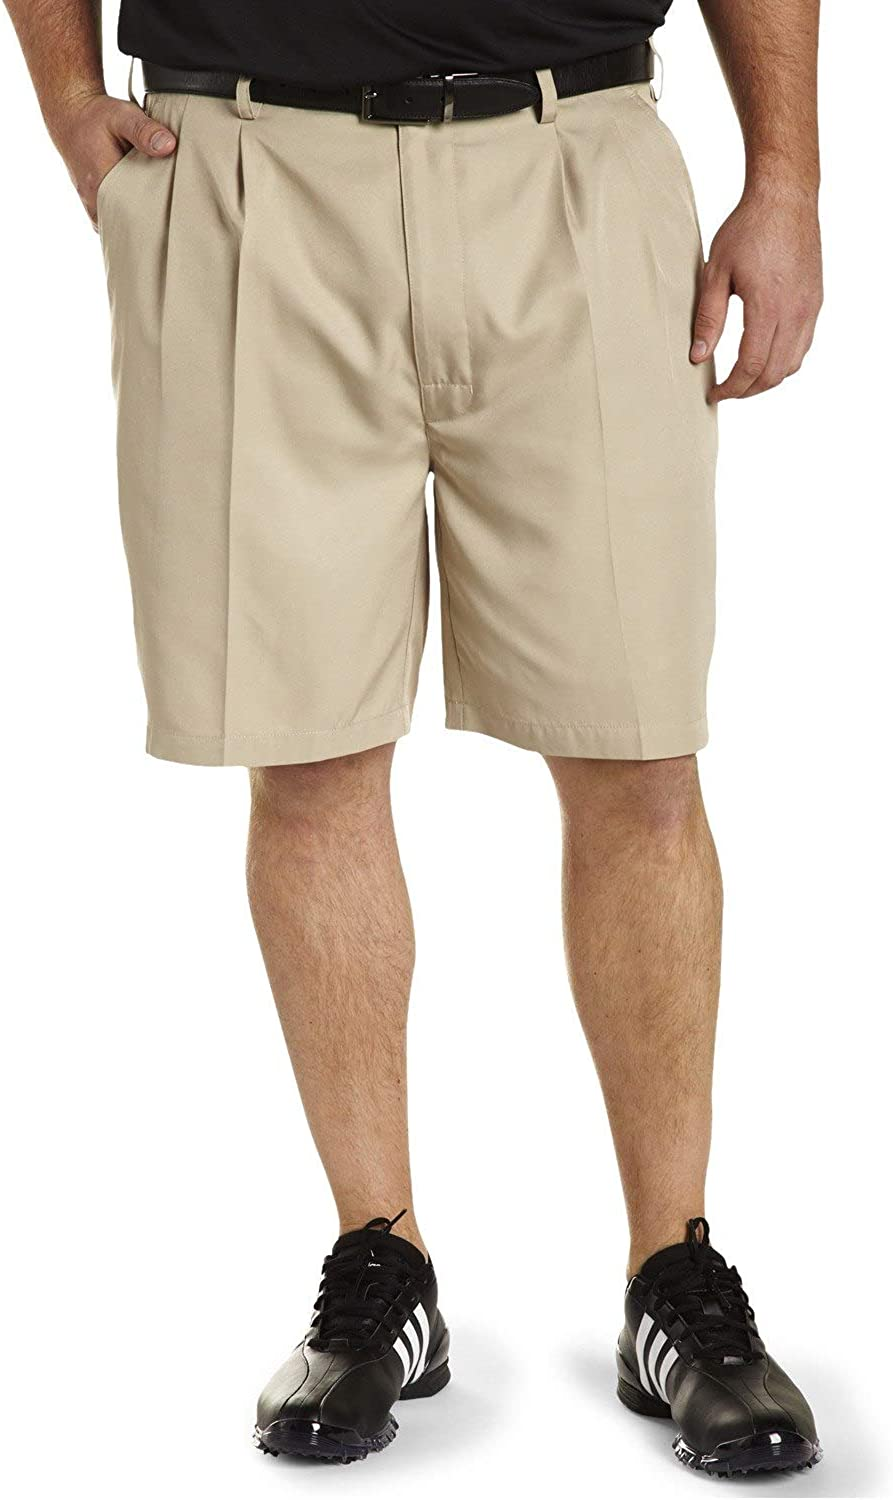 Reebok Golf Speedwick Continuous Comfort Pleated Shorts